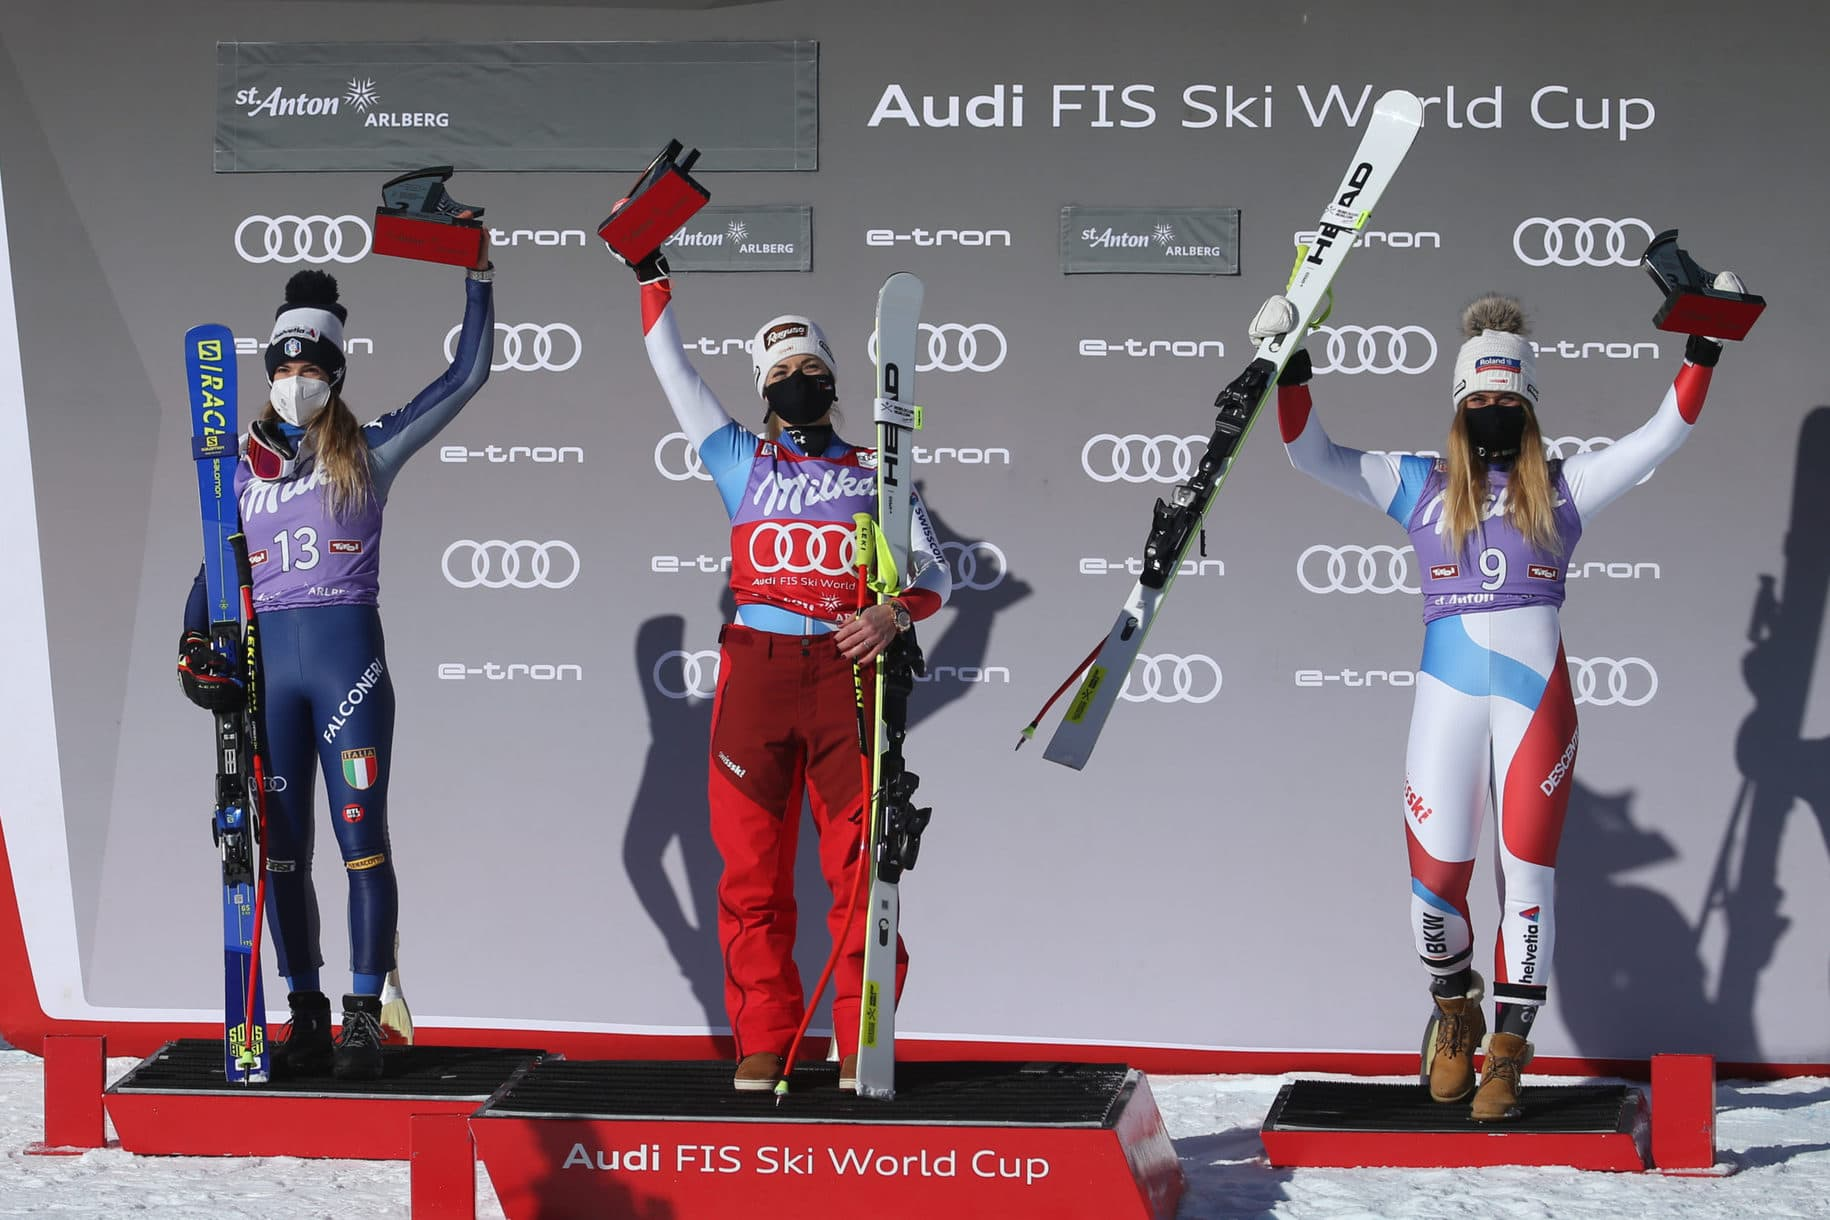 SANKT ANTON,AUSTRIA,10.JAN.21 - ALPINE SKIING - FIS World Cup, Super G, ladies, award ceremony. Image shows the rejoicing of Marta Bassino (ITA), Lara Gut-Behrami and Corinne Suter (SUI). Photo: GEPA pictures/ Daniel Goetzhaber